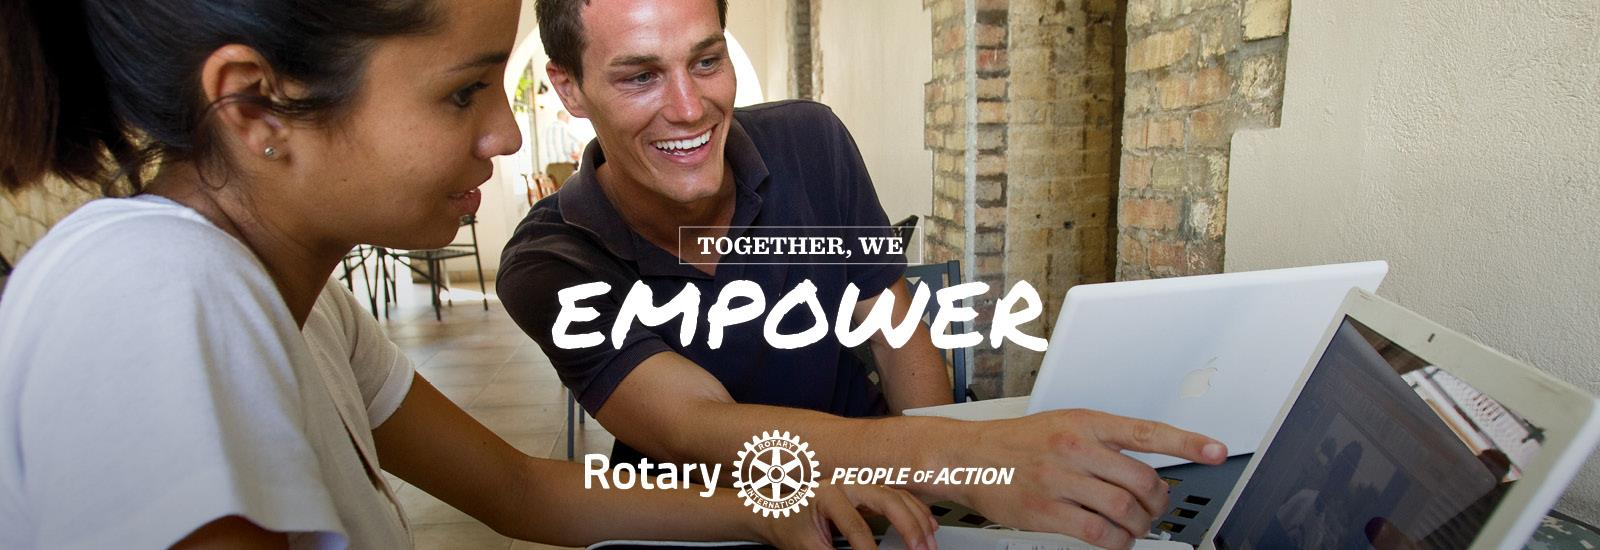 Fox Cities Morning Rotary Club Empower